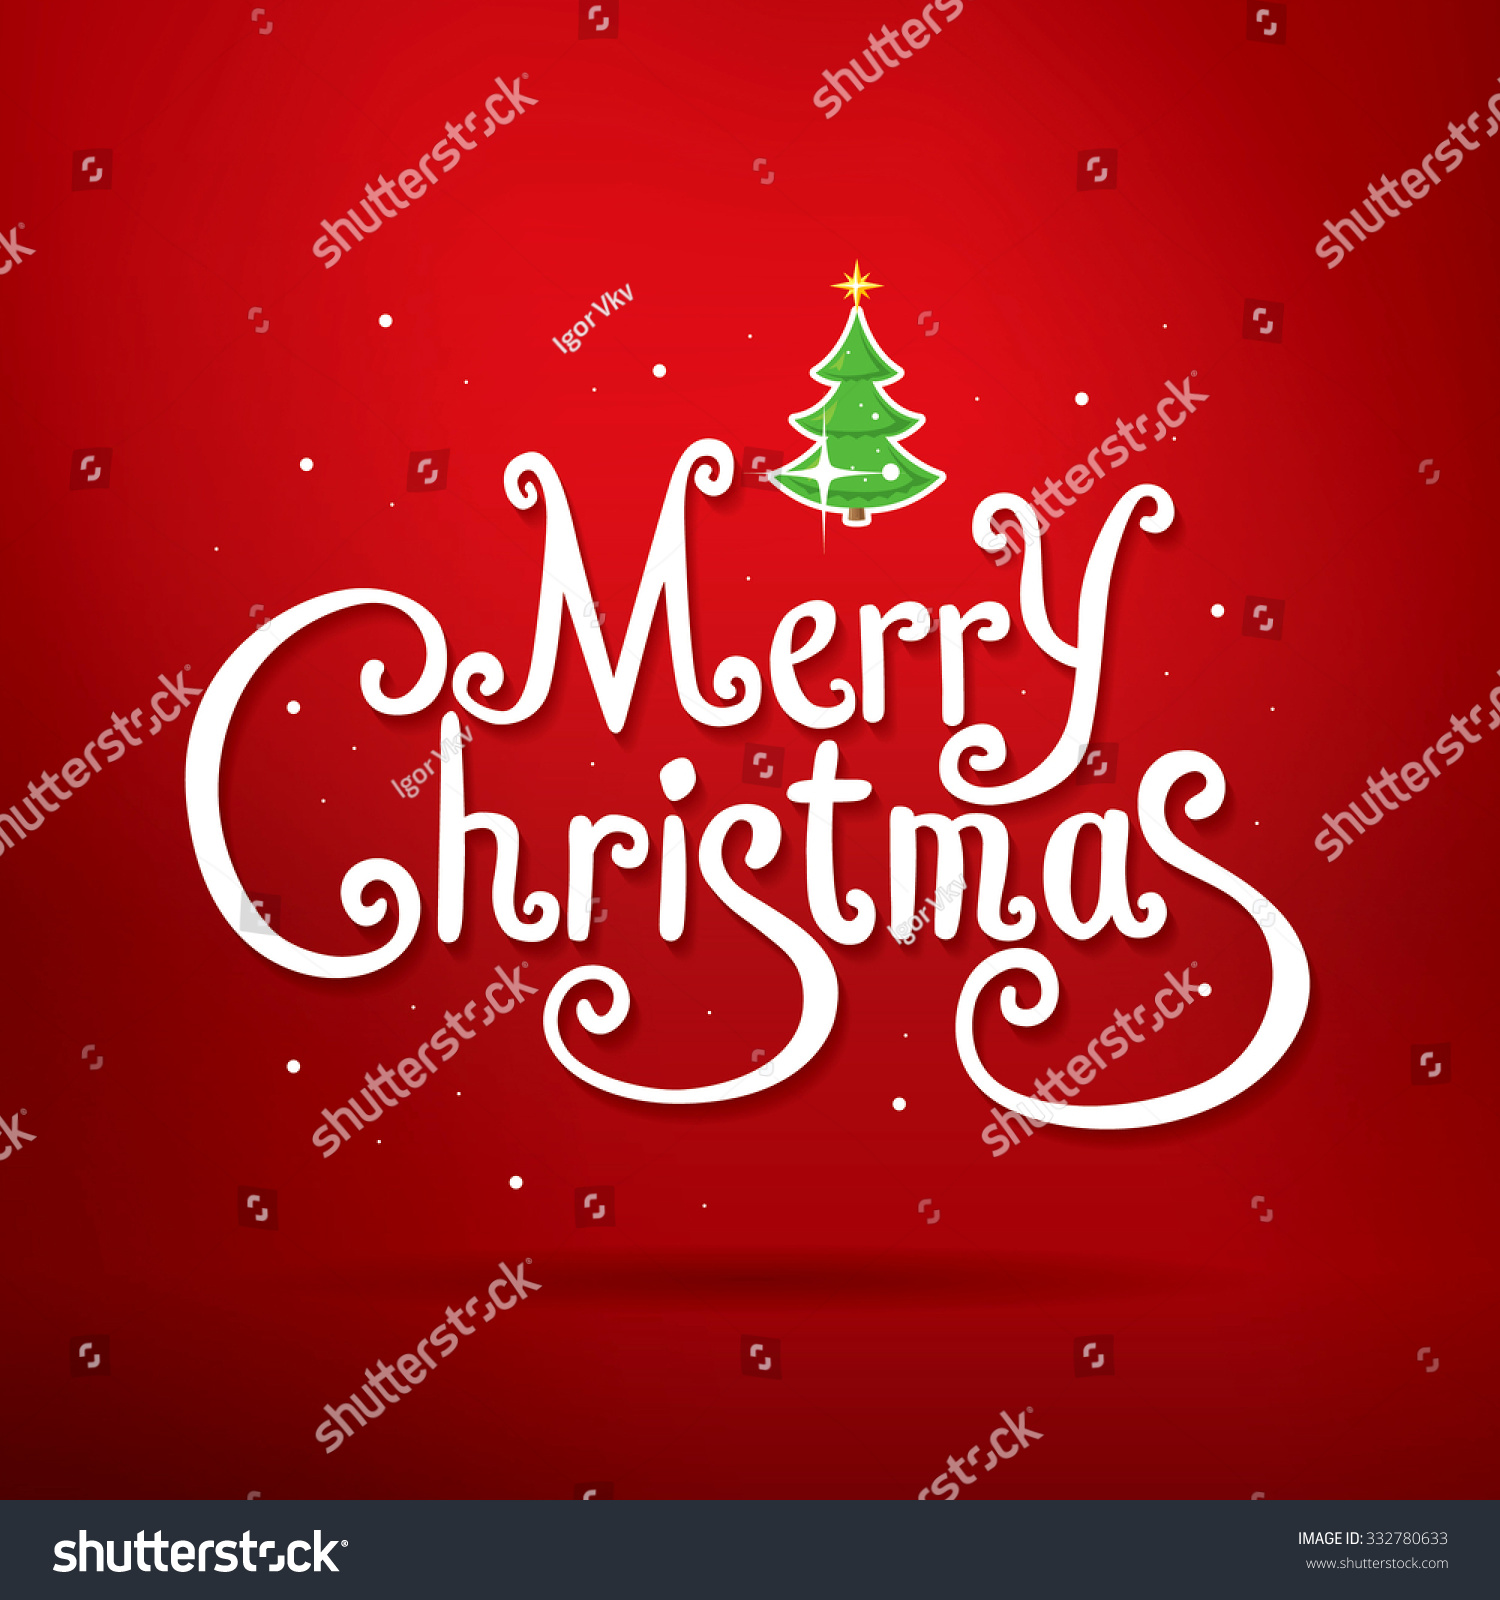 Merry christmas lettering christmas greeting card stock vector merry christmas lettering christmas greeting card kristyandbryce Image collections